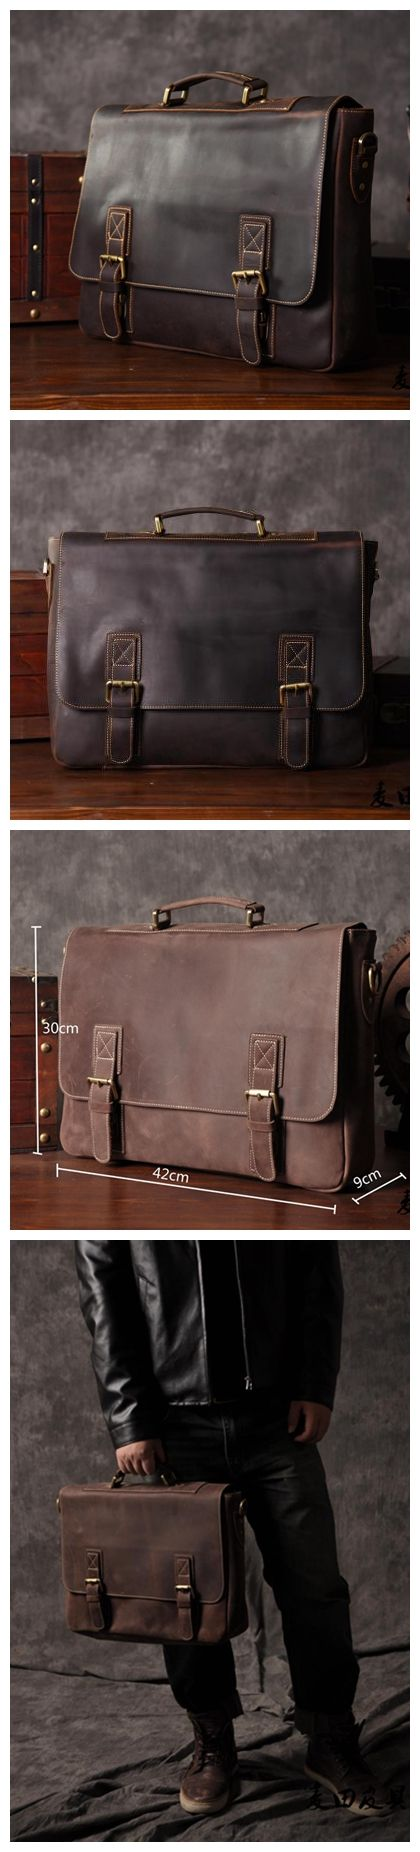 Genuine Leather Men's Briefcase Laptop Handbag Messenger Bag Leather Goods For Men Leather Good Design